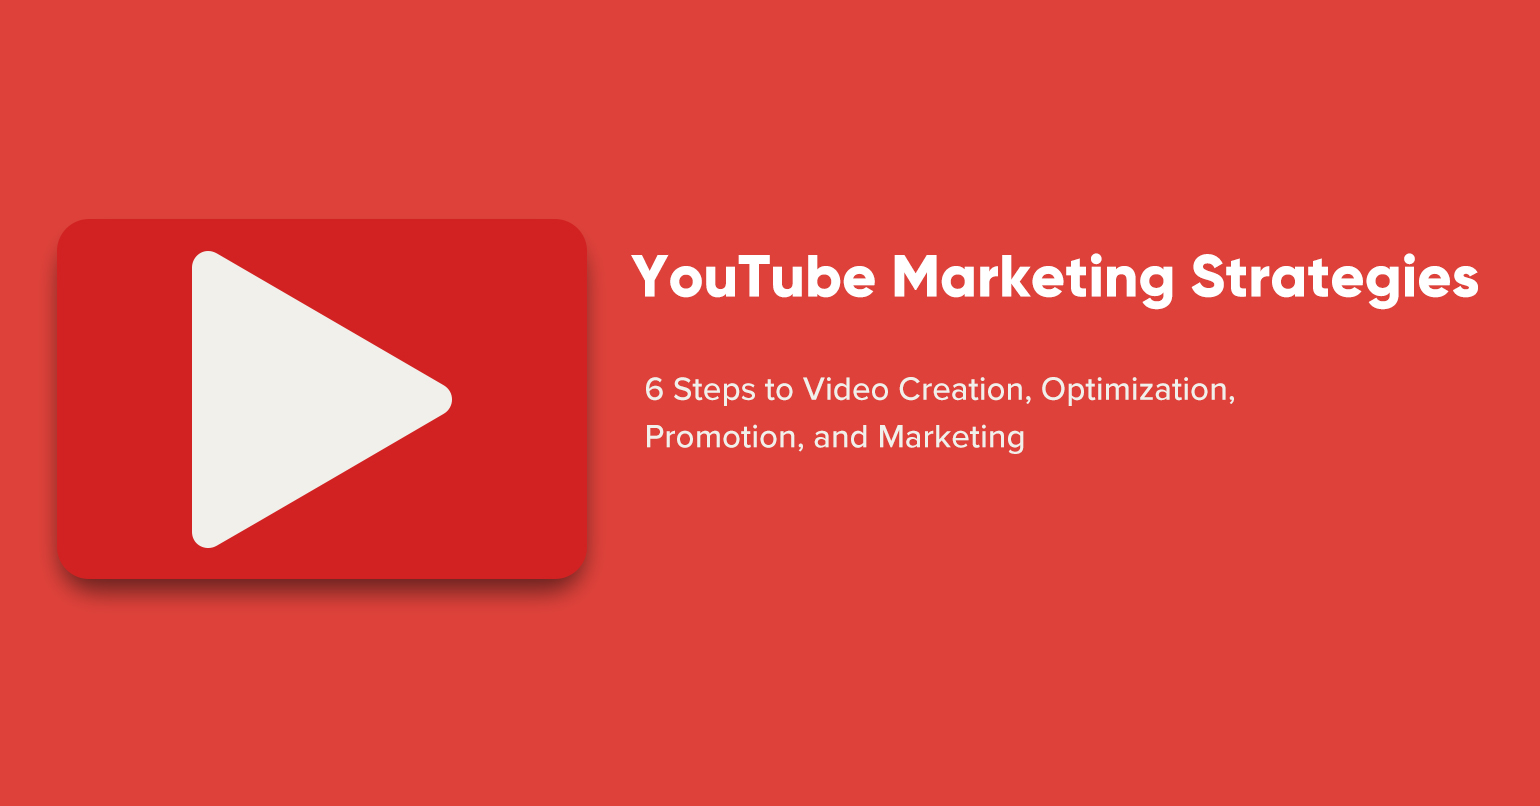 6 Steps to YouTube Video Marketing Strategy: Here's What Nobody is Talking About